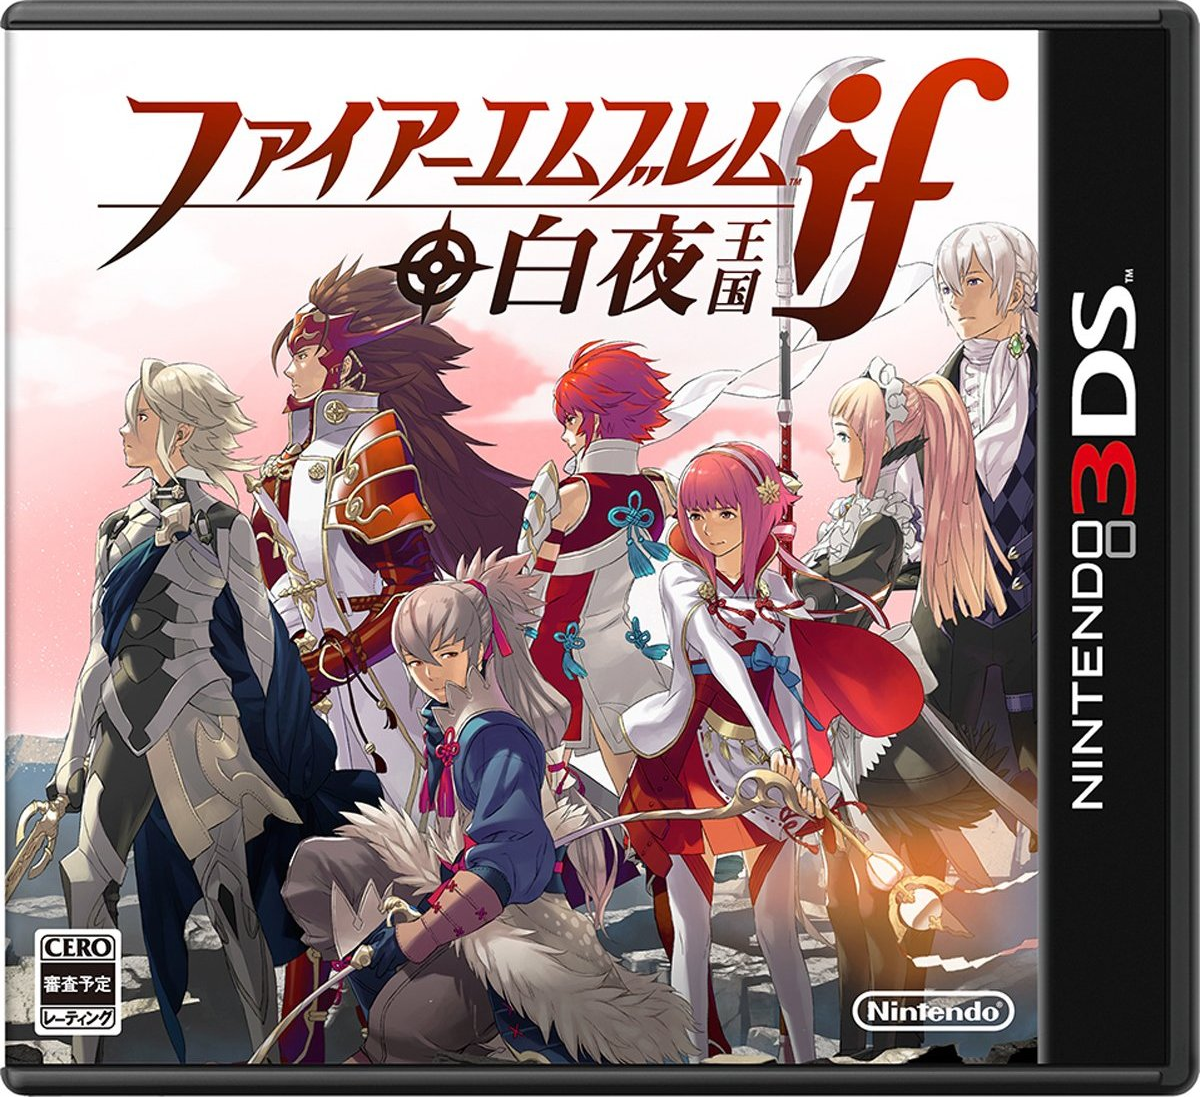 Fire Emblem Fates 3ds Game Nintendo Conquest Usa Choose Either Hoshido Or Nohr To Side With You Can Get The Other Story Via Dlc Therell Be A 3rd Storyline As Which Will Come Later Unknown Date